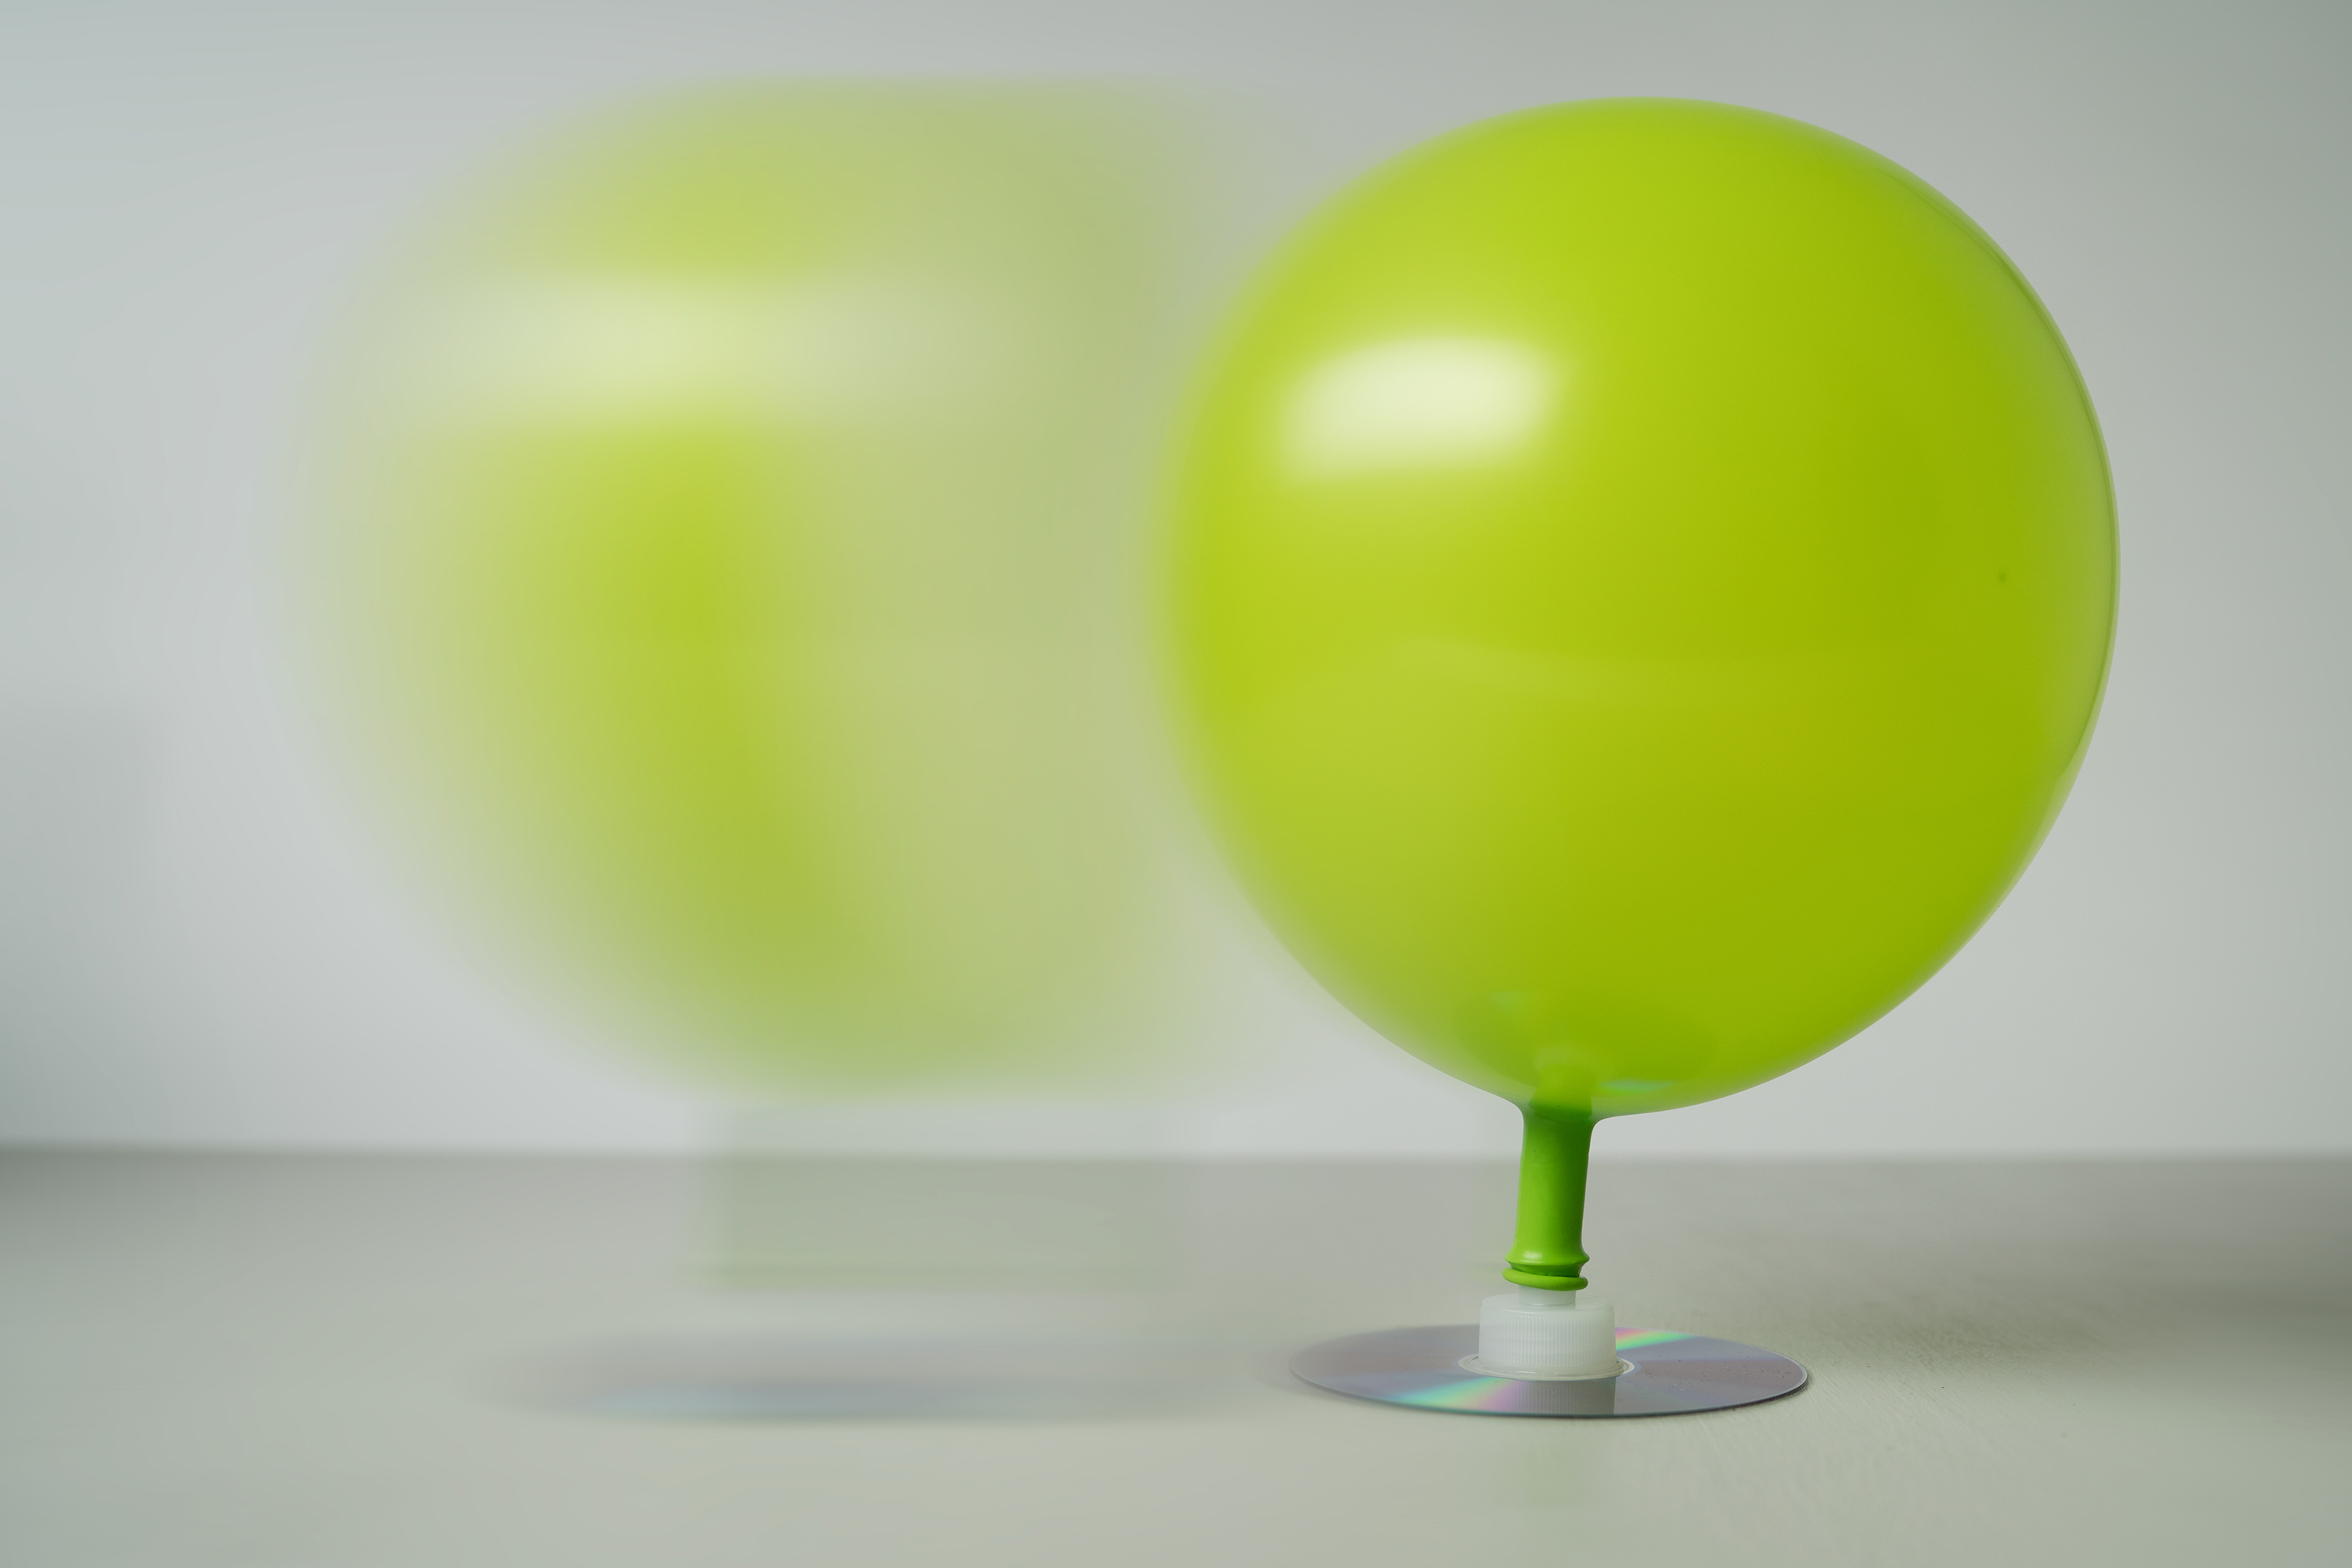 Balloon hovercraft for Diy balloon projects